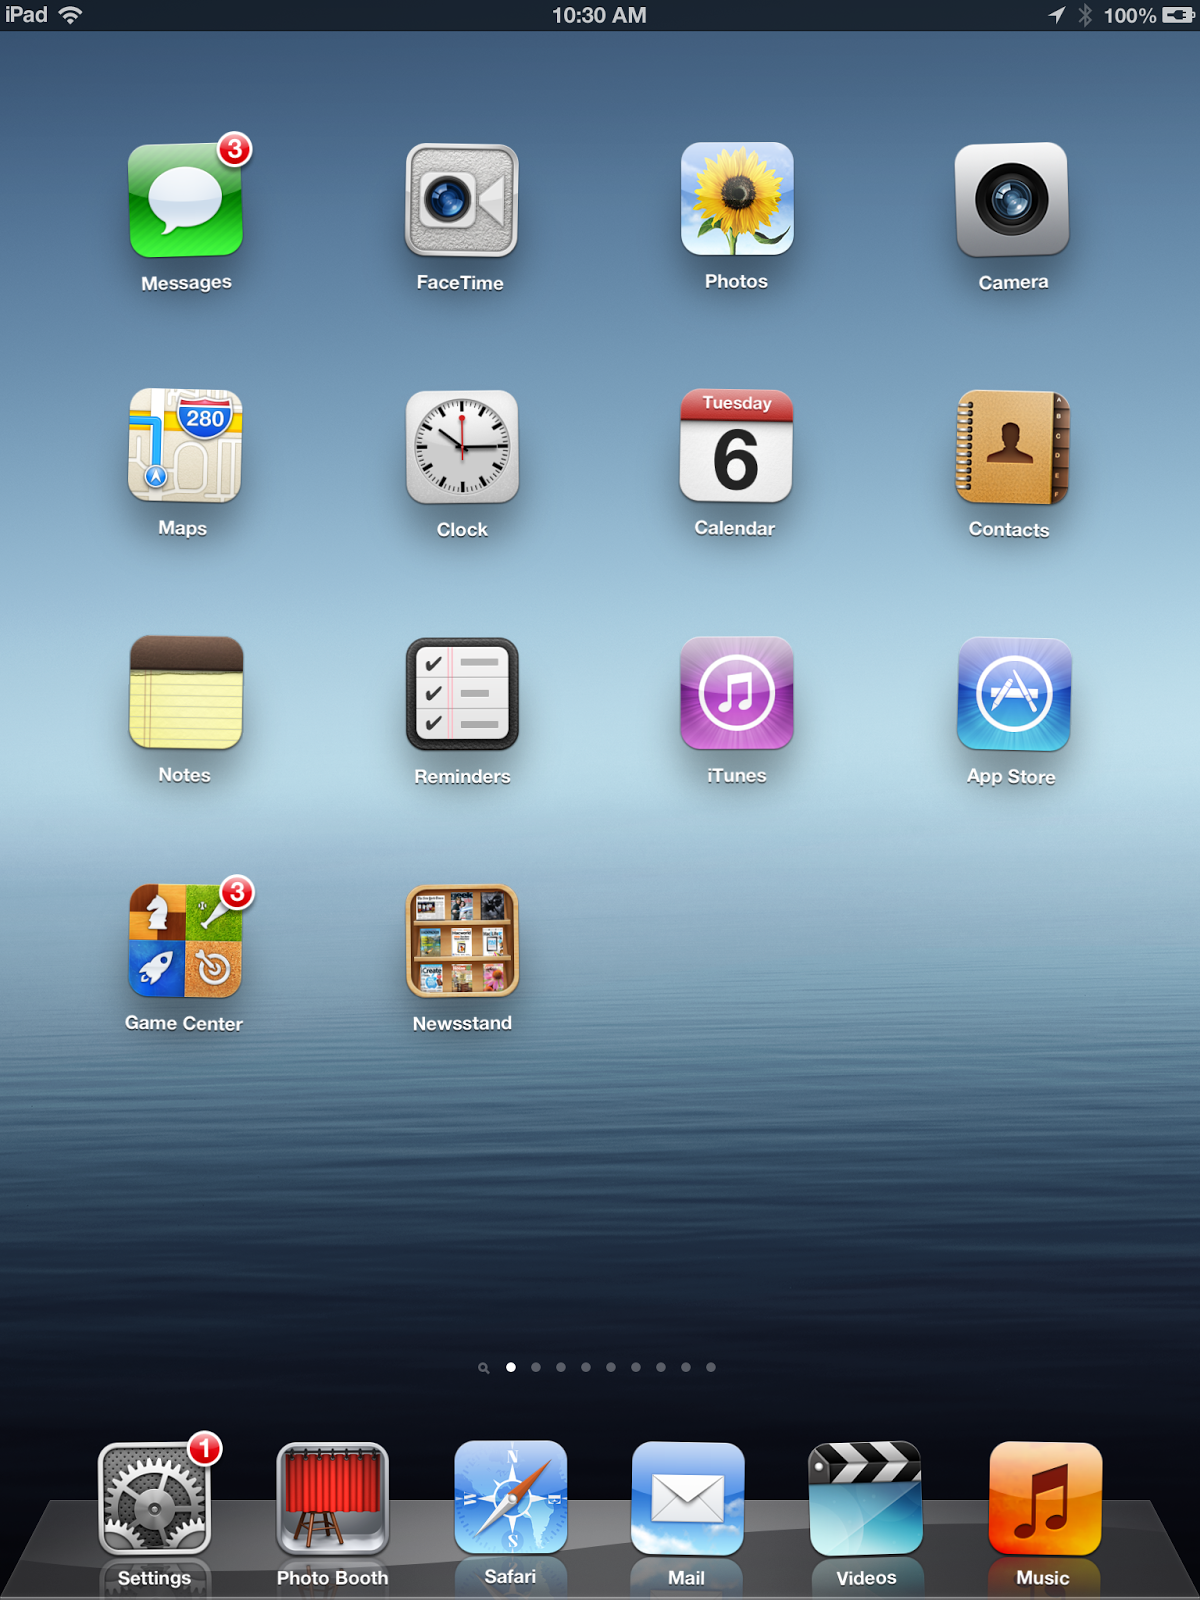 quality ipad keeps going back to home screen better experience, enable